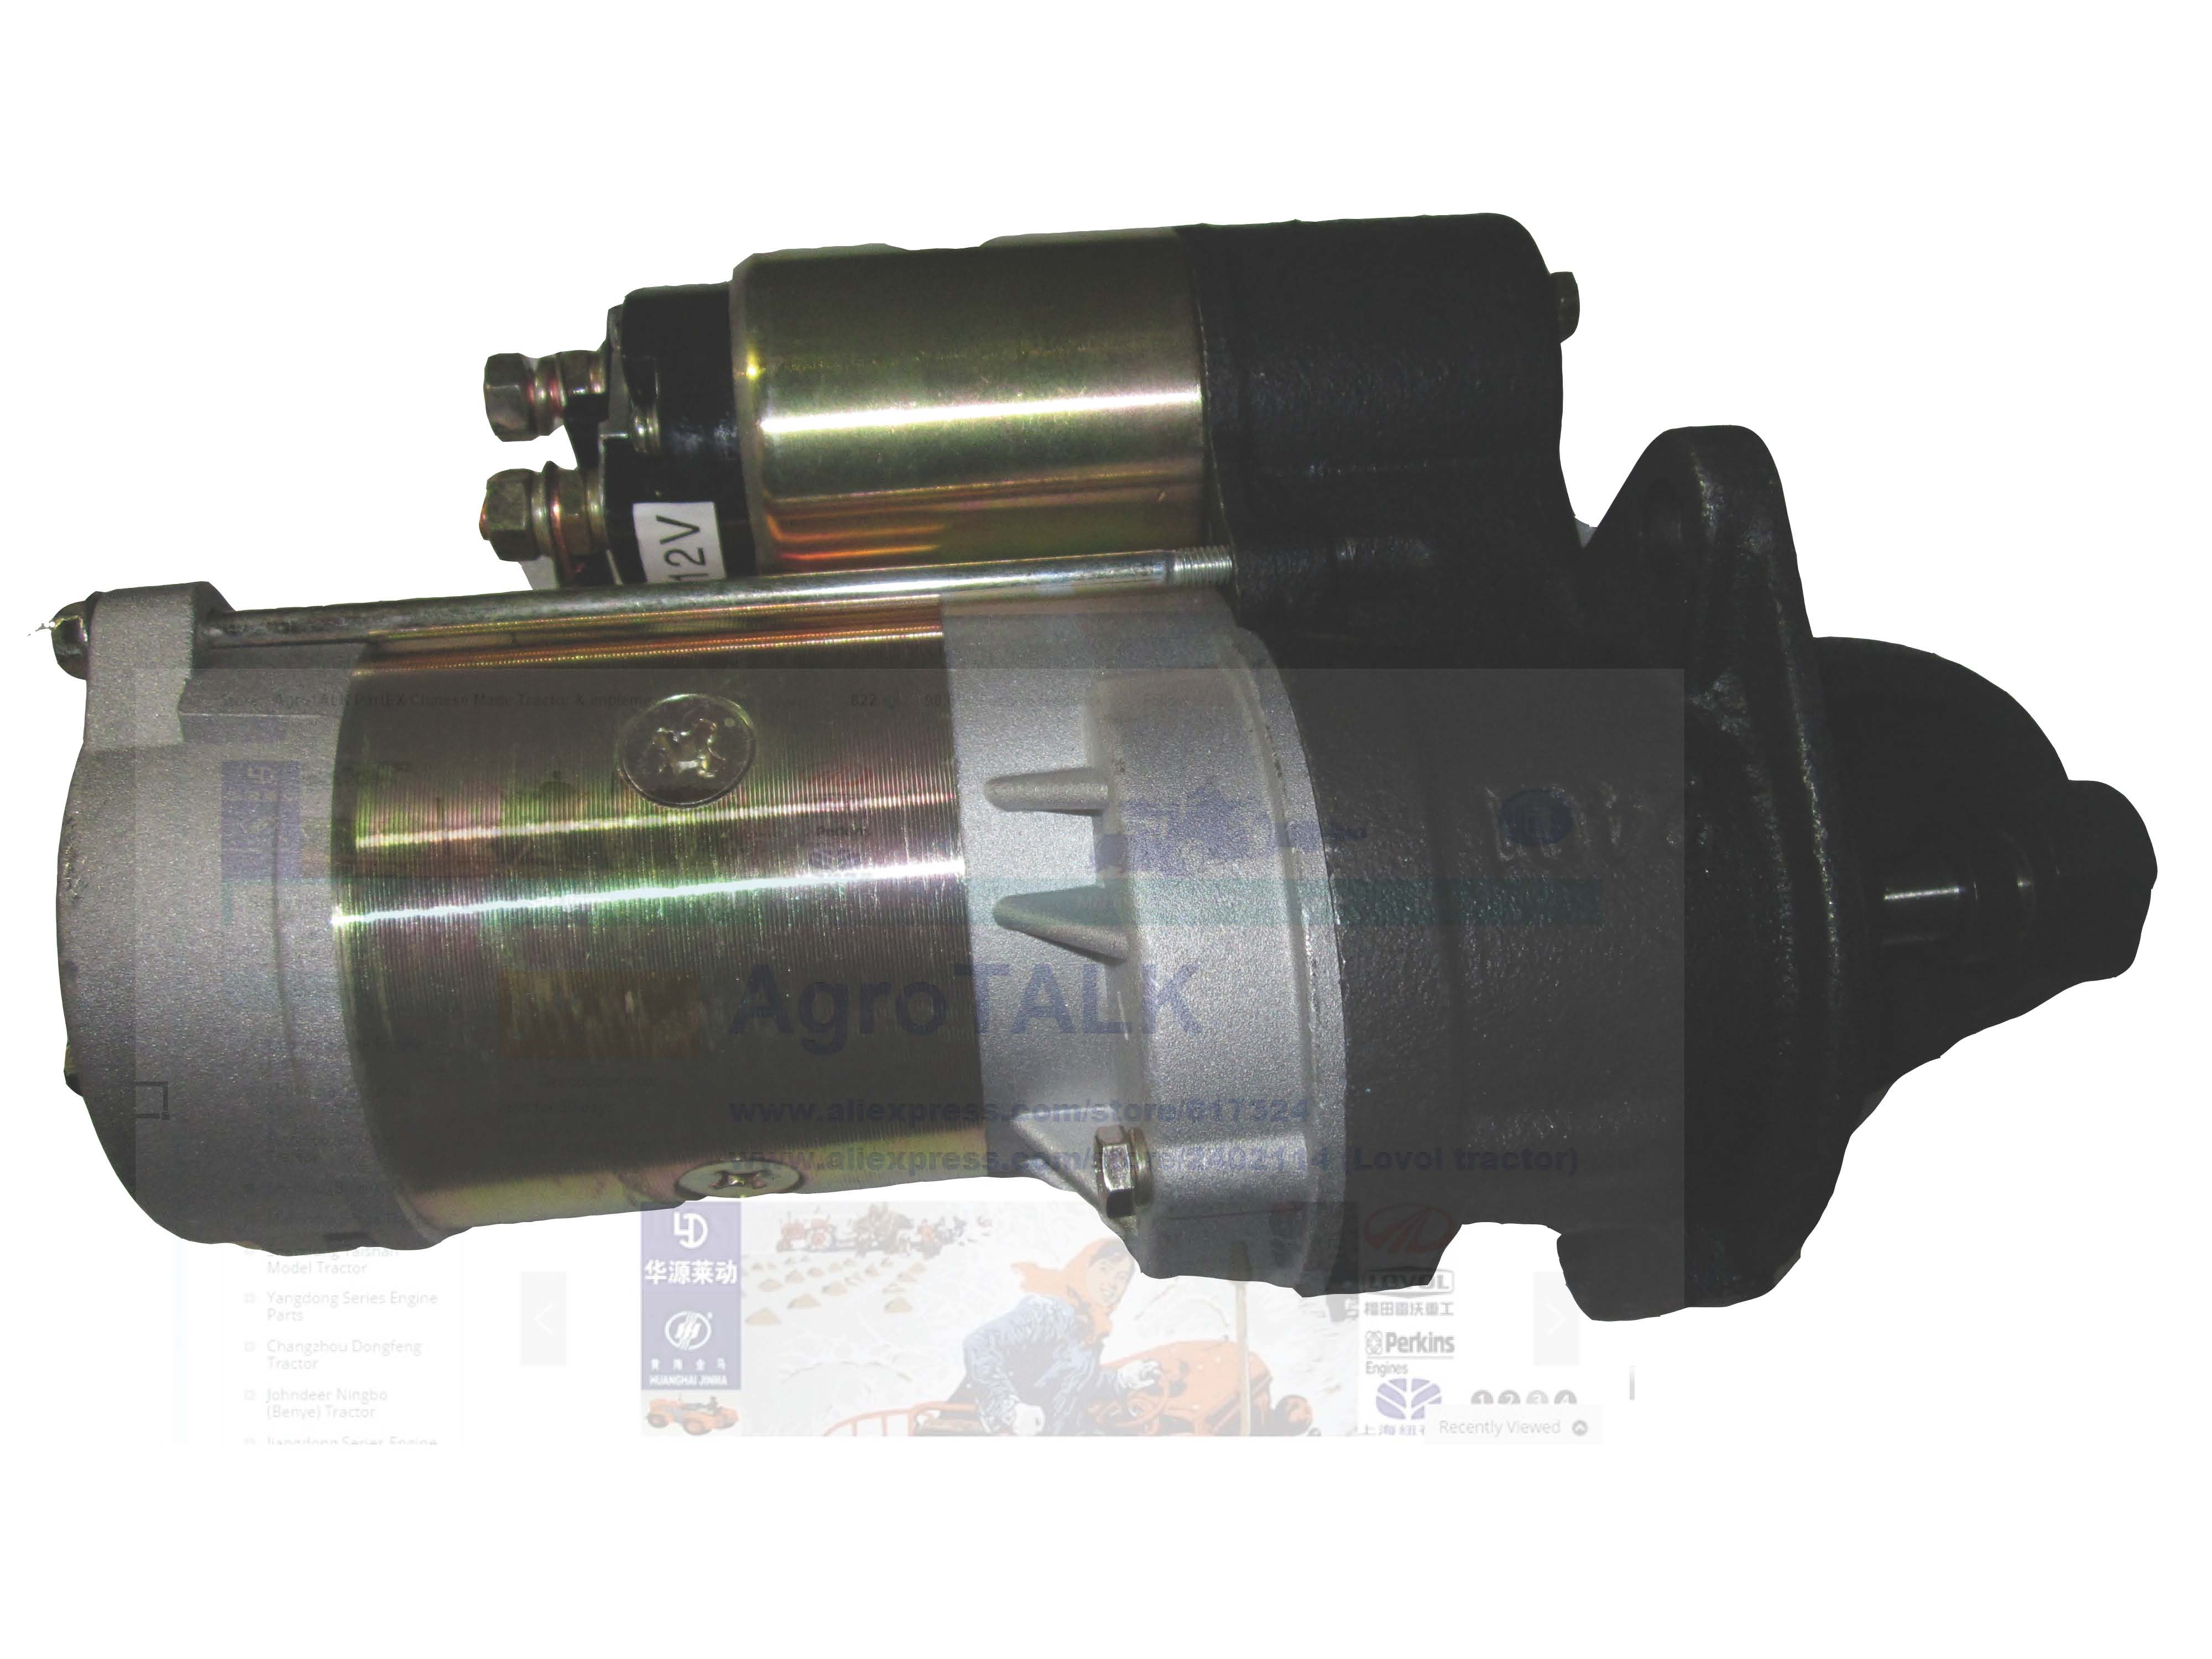 Shenniu Bison SN250/ SN254 / SN304 , the starter motor for HUBEI brand engine 295T/390T, part number: